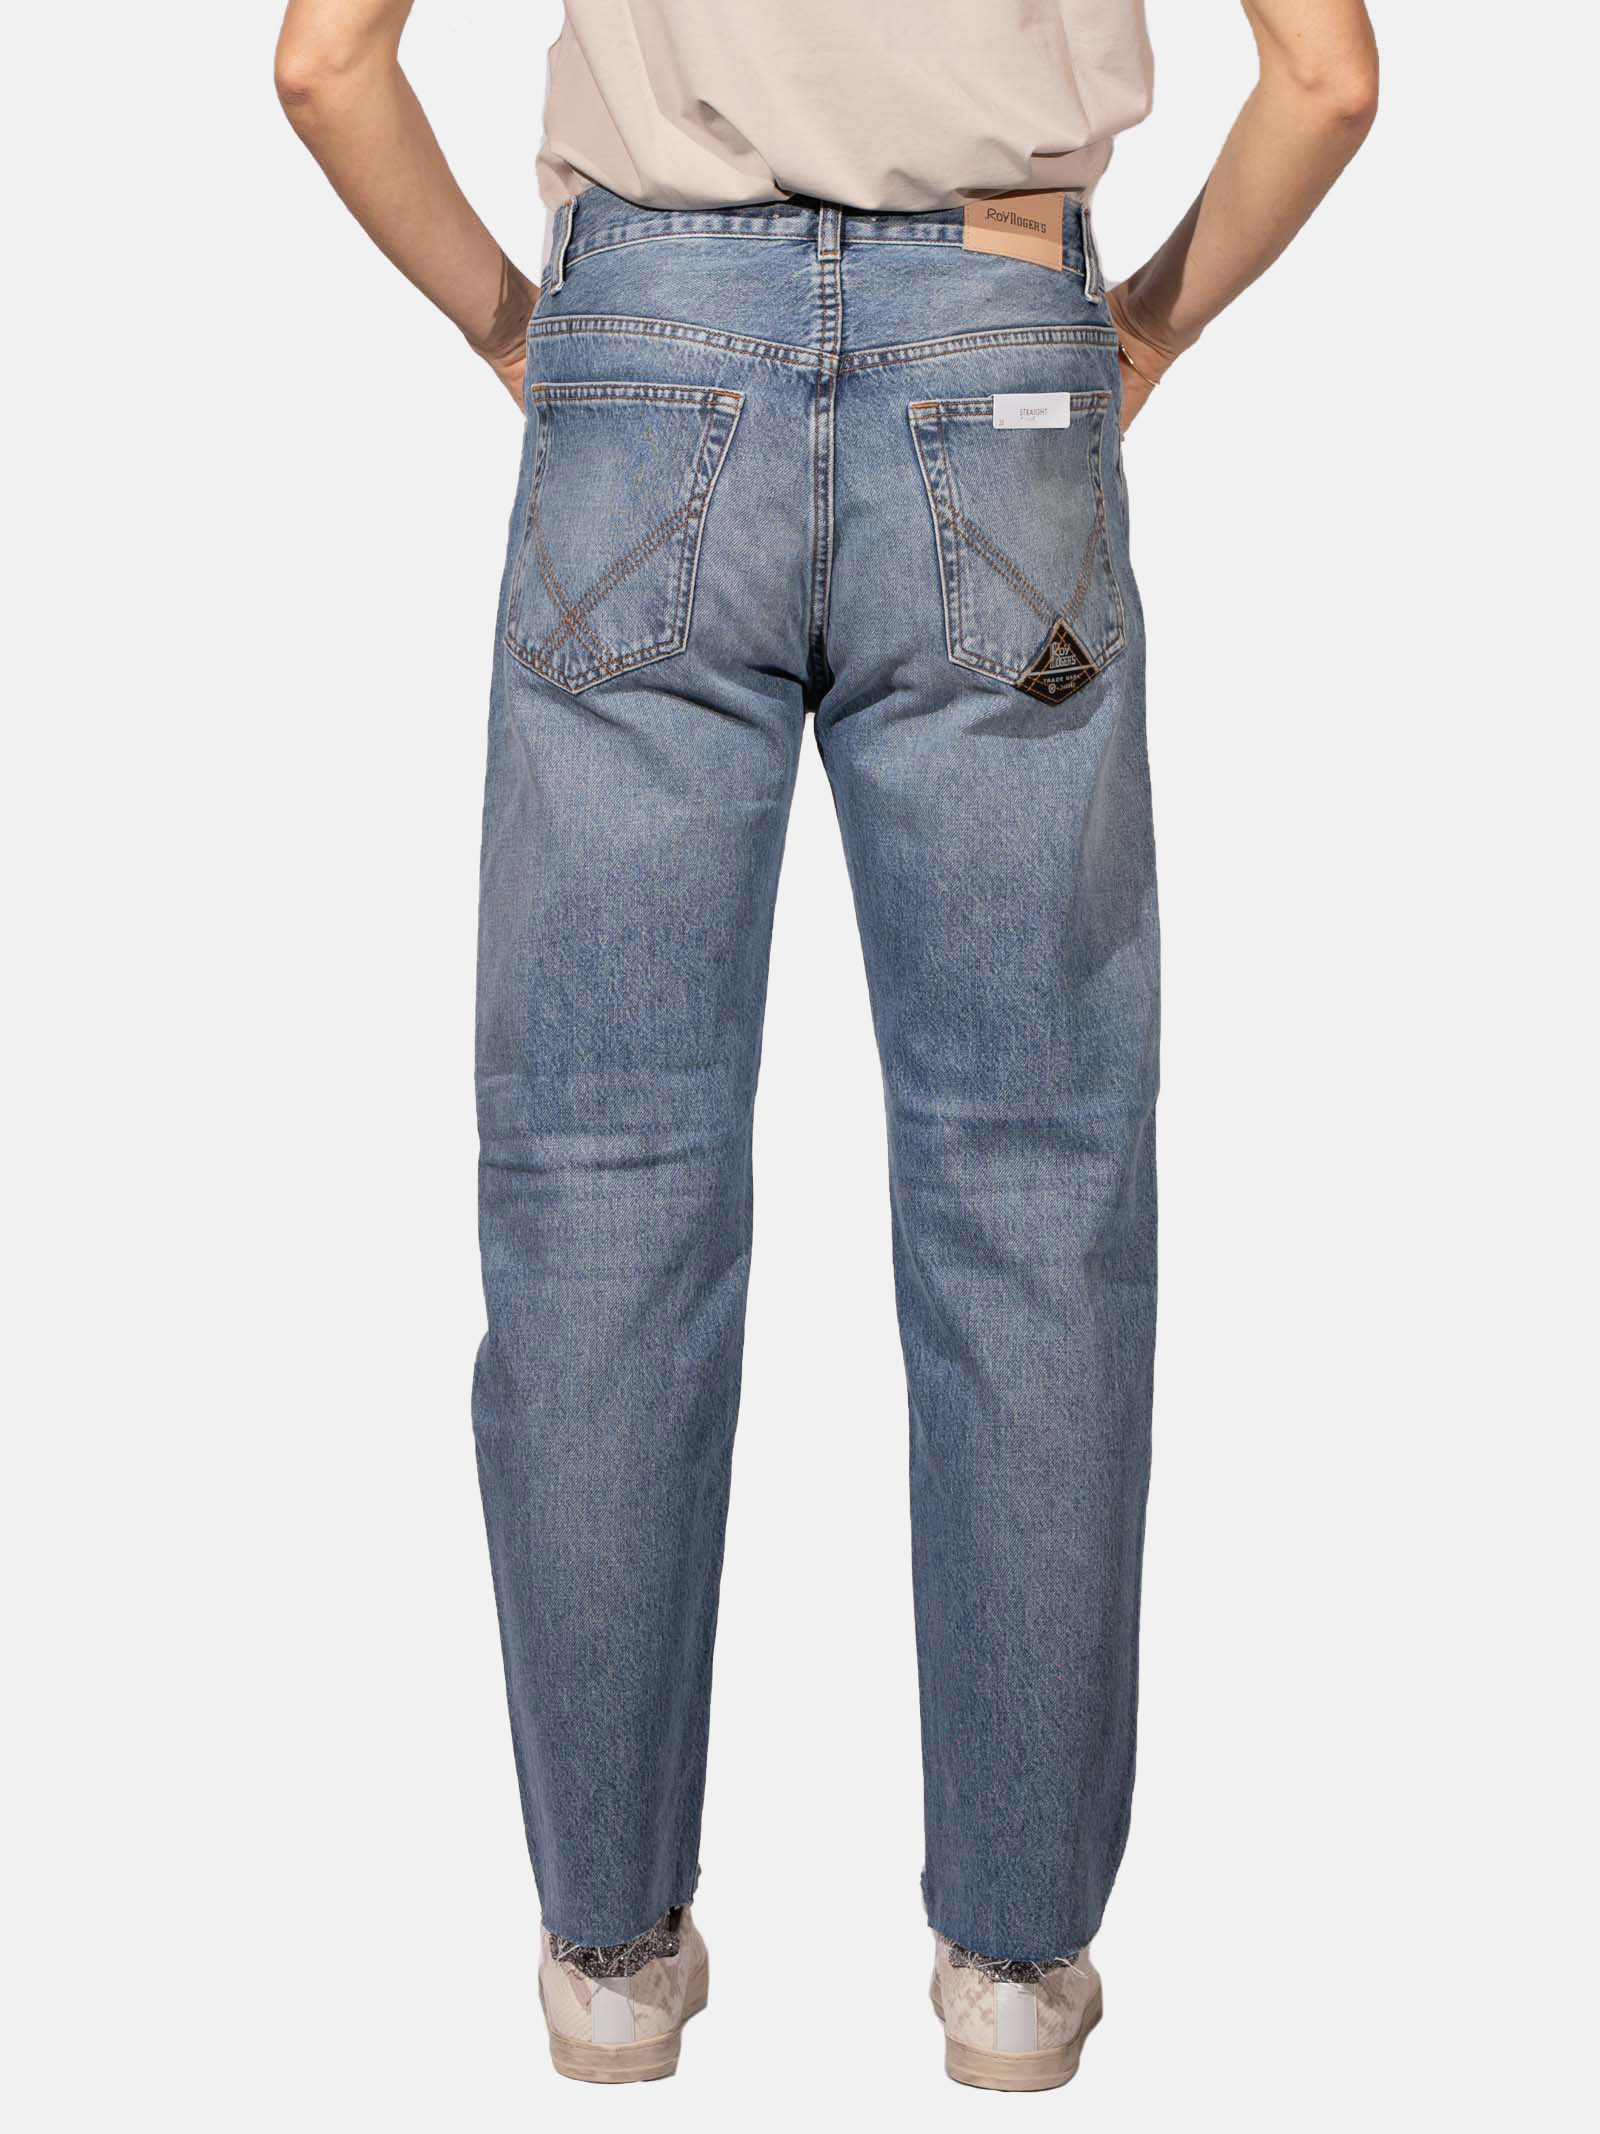 Jeans cool no pulp Roy Roger's ROY ROGER'S | Jeans | P21RND210D4021752NDENIM